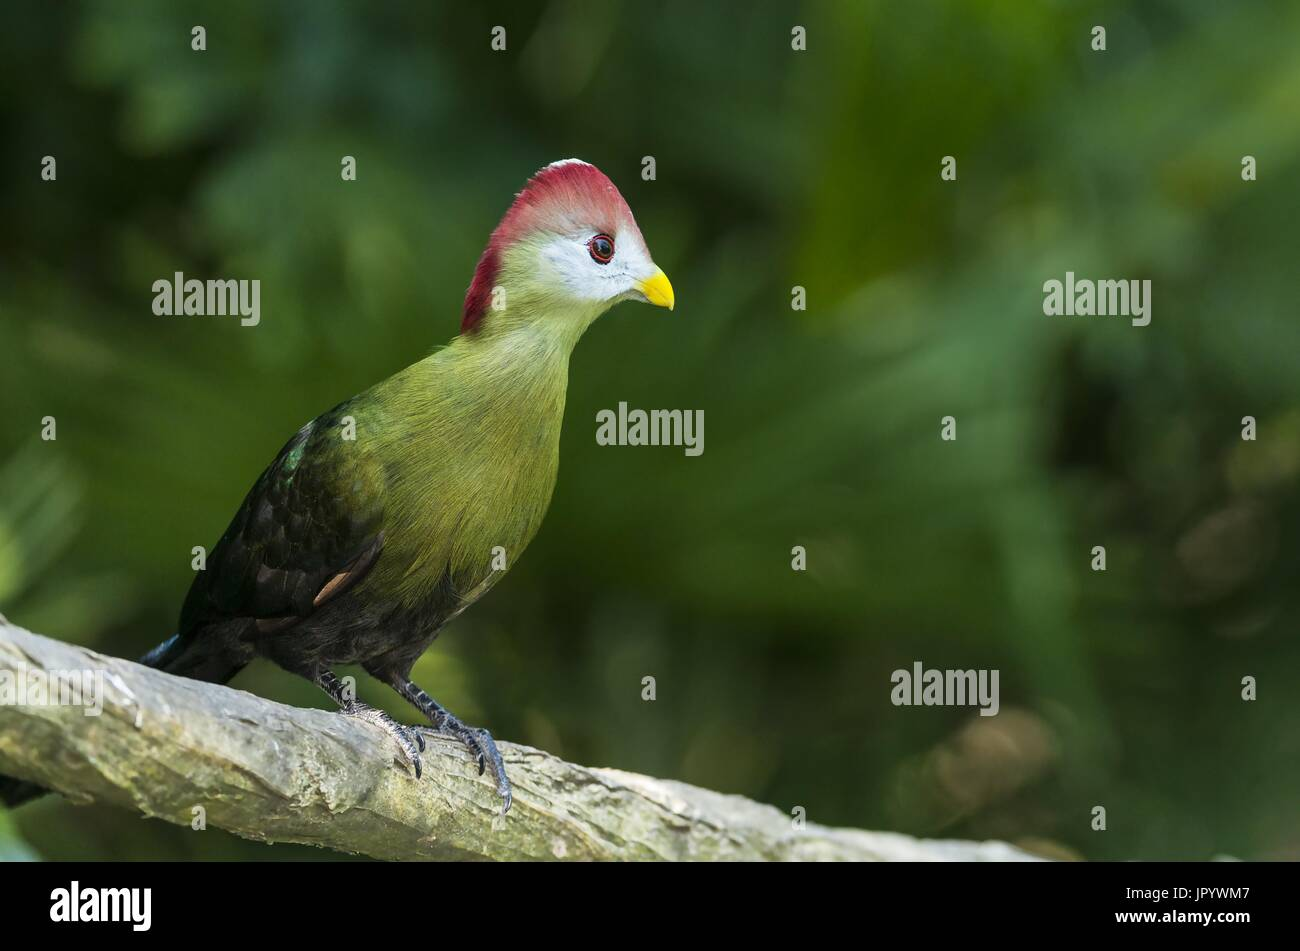 Red-crested Turaco (Tauraco erythrolophus) on a branch, Angola - Stock Image